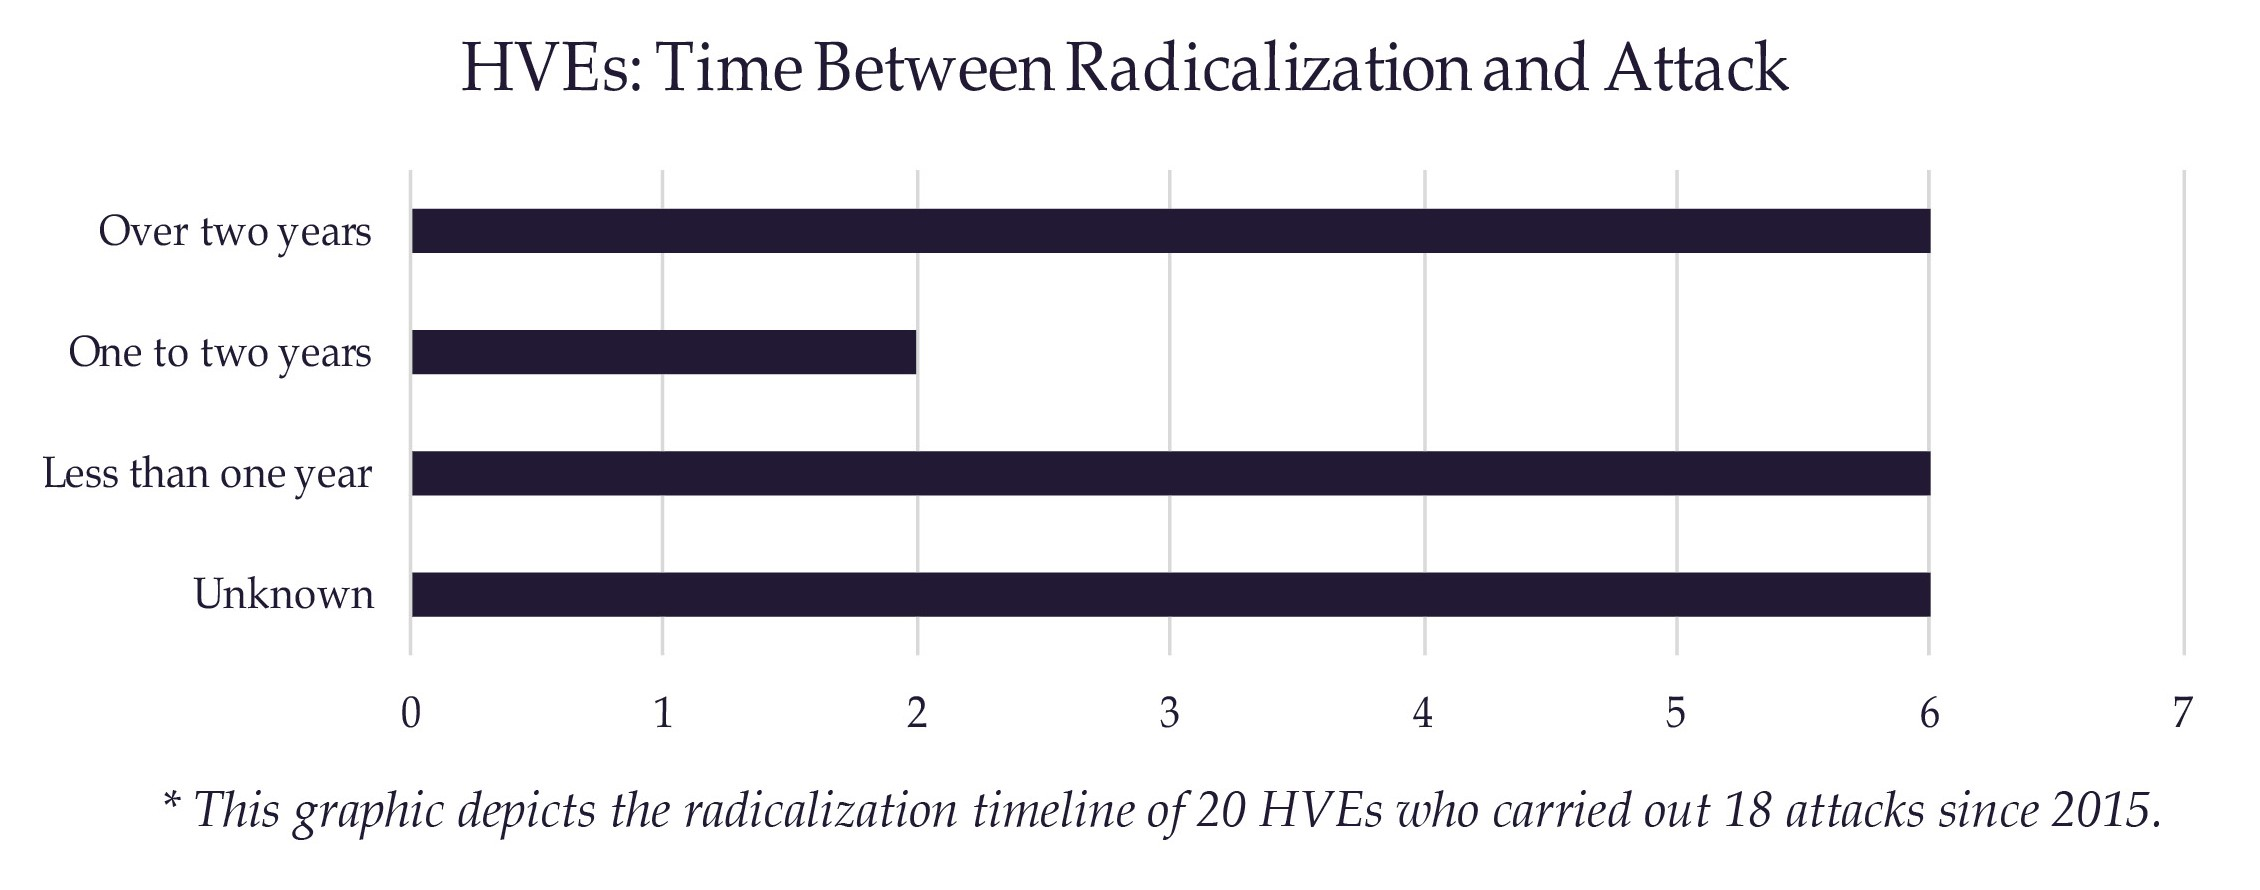 HVEs: Radicalization Timeline and Trends